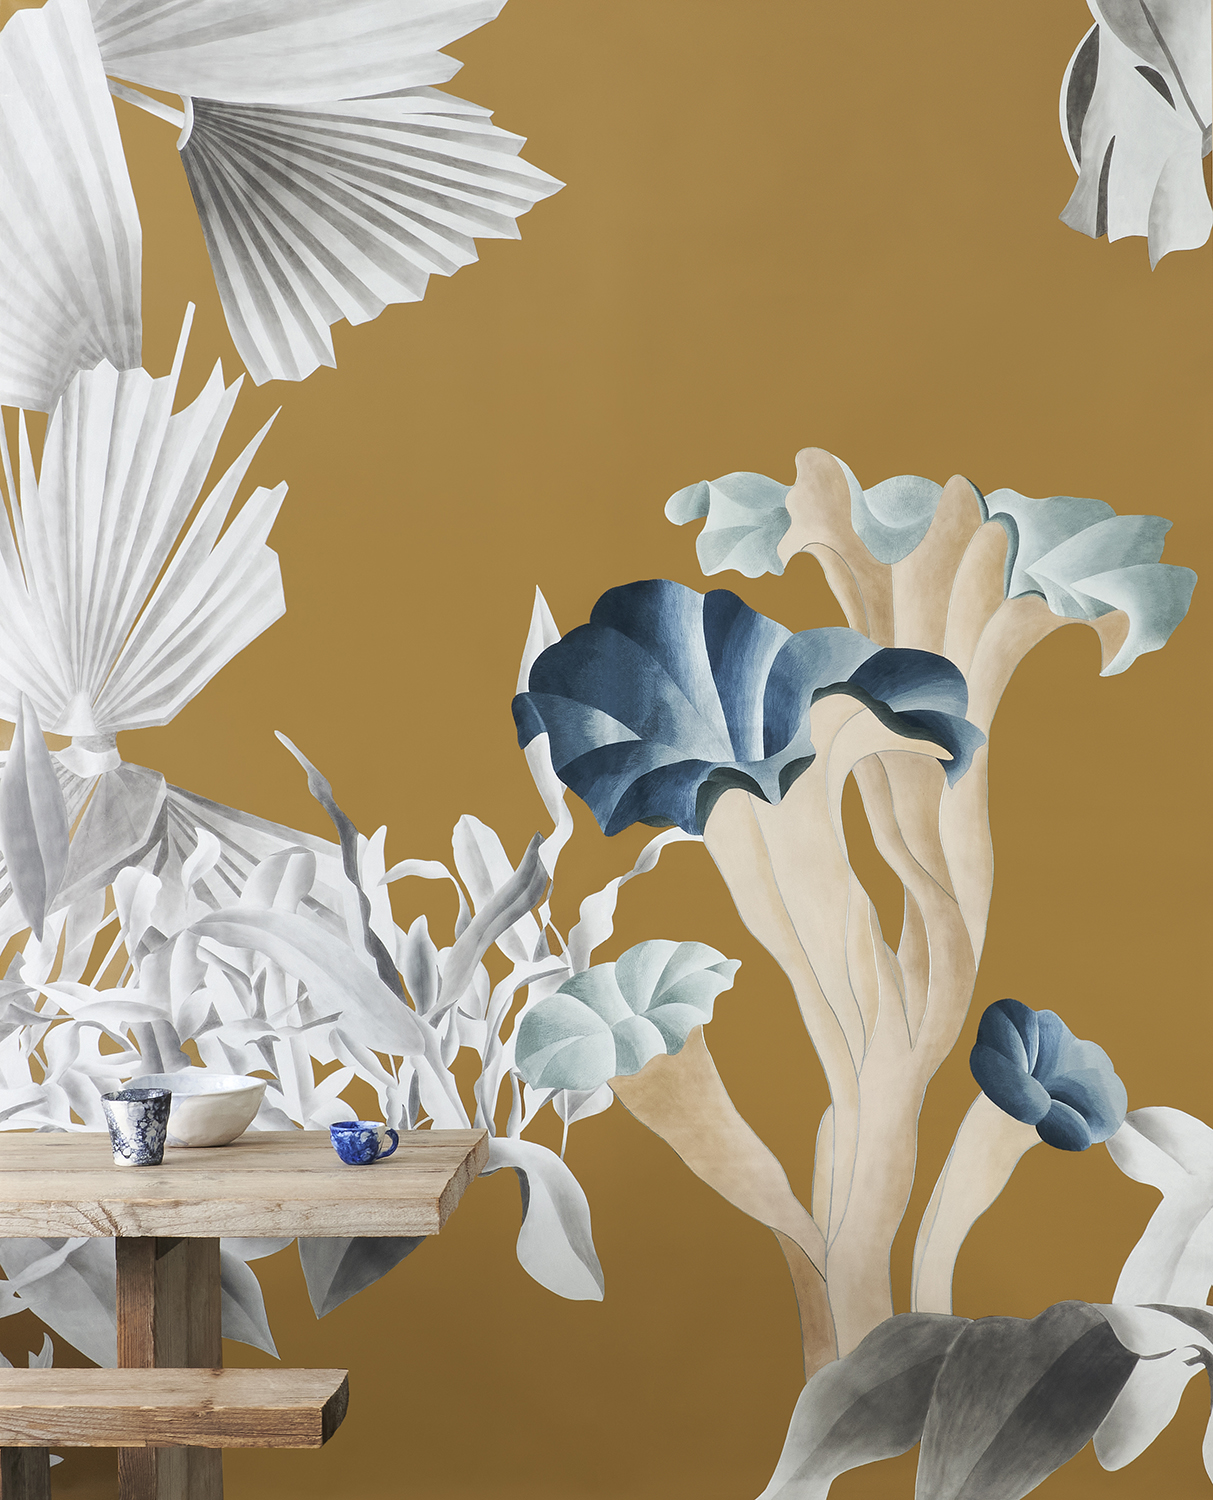 Still life picture by Davide Lovatti formosa wallpaper with hand painted and embroidery details